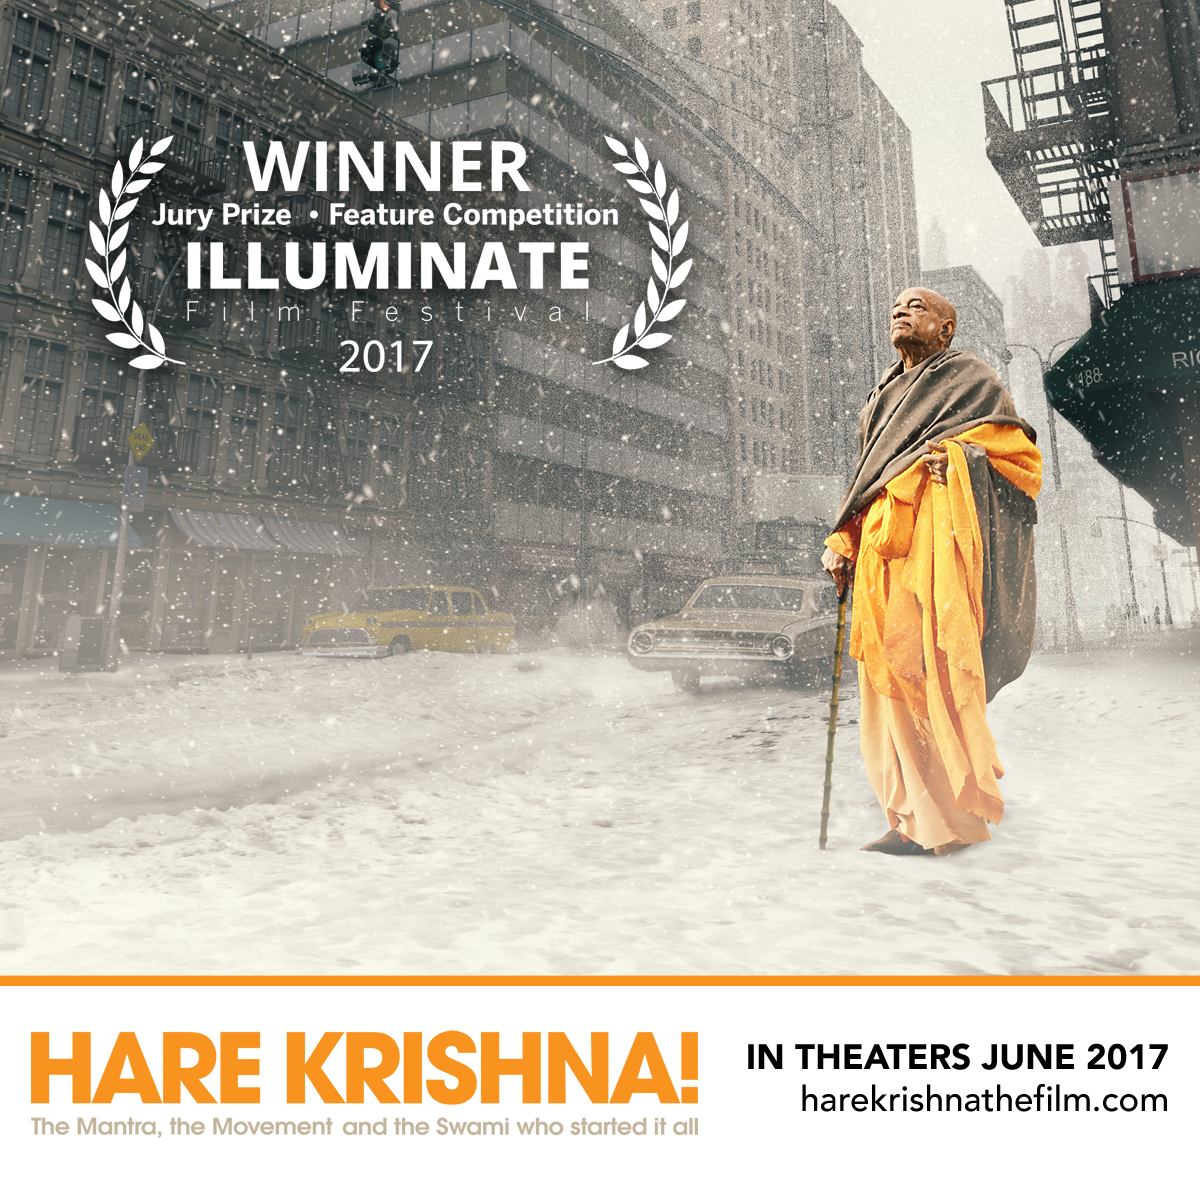 Hare Krishna -The Film: A unique film in Houston on July 7, 8 and 9 @ 800 Aurora St.